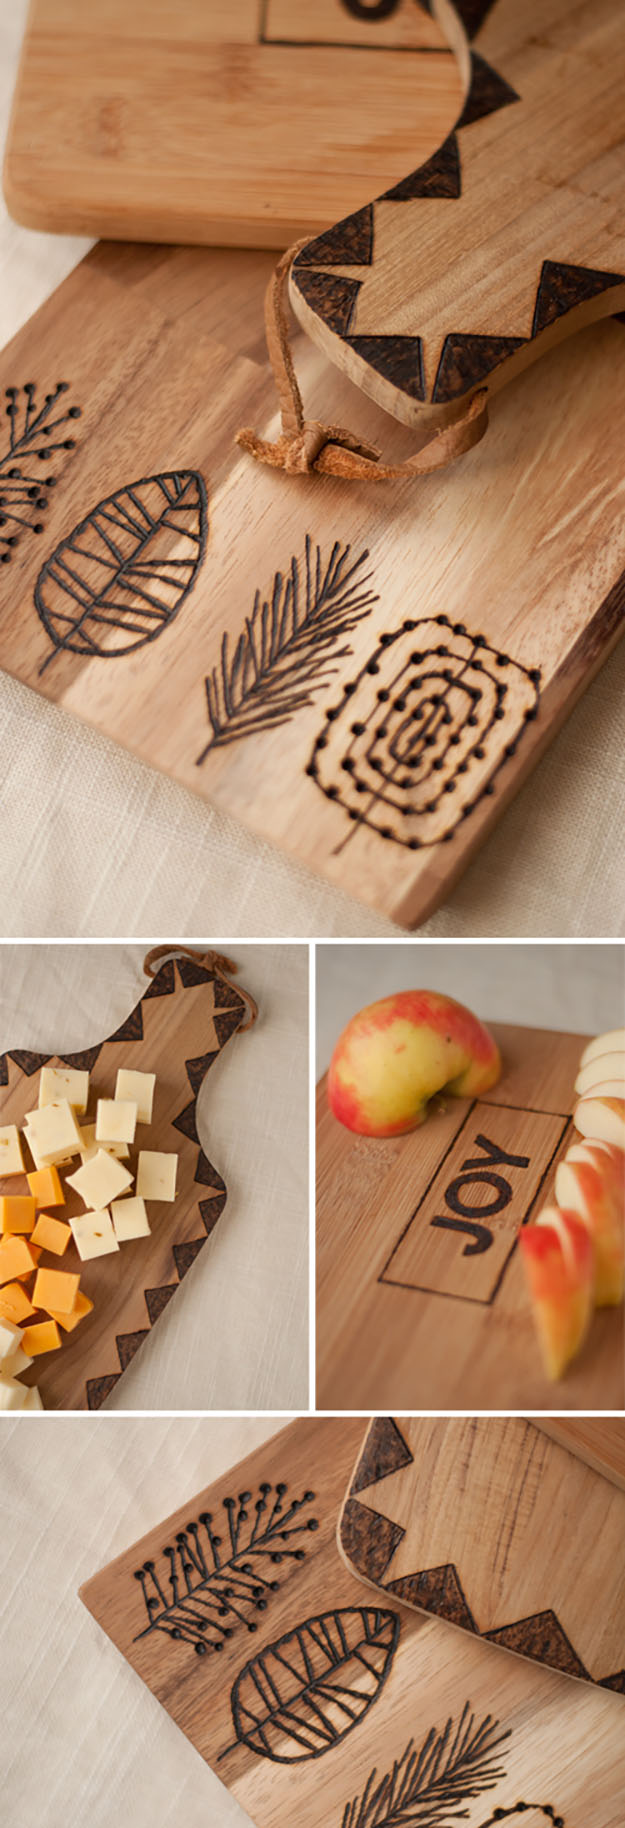 DIY Gifts for Friends & Family | DIY Kitchen Ideas | Etched Wooden Cutting Boards | DIY Projects & Crafts by DIY JOY | Top Selling Things to Make And Sell On Etsy